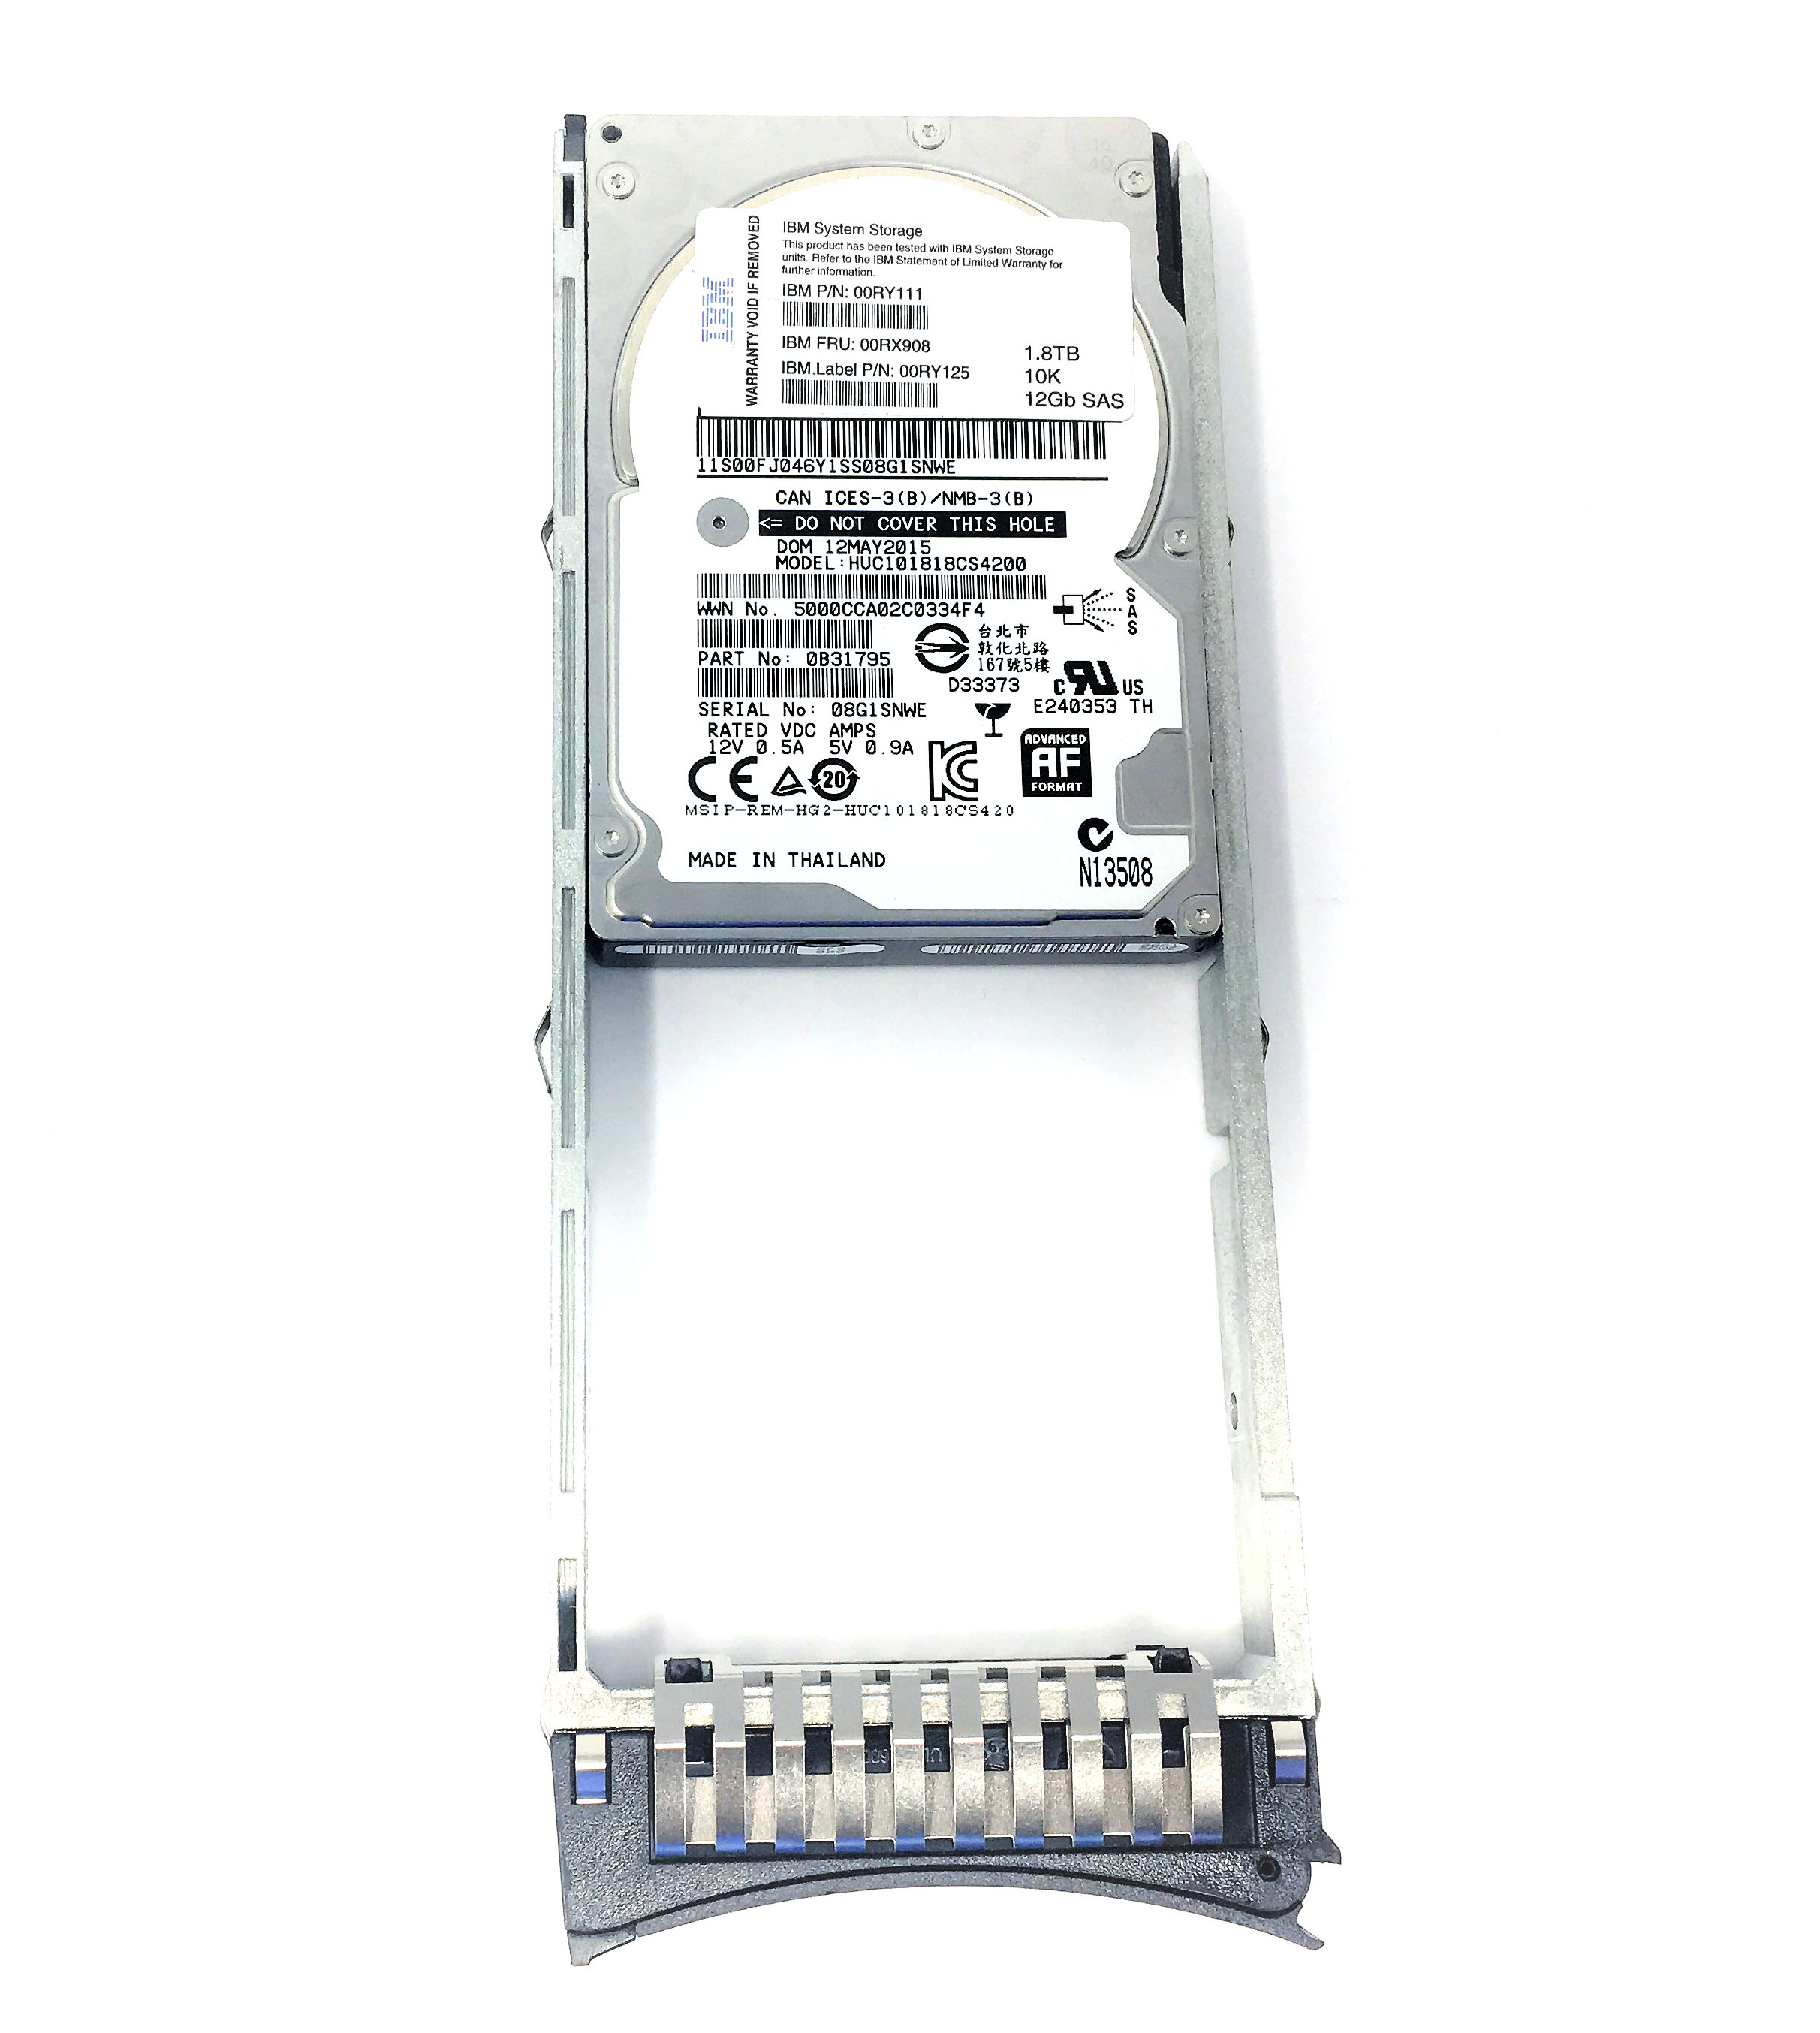 Details about 00RY125 IBM 1 8TB 10K 12Gbps SAS 2 5'' Hard Drive 2076-AHF4